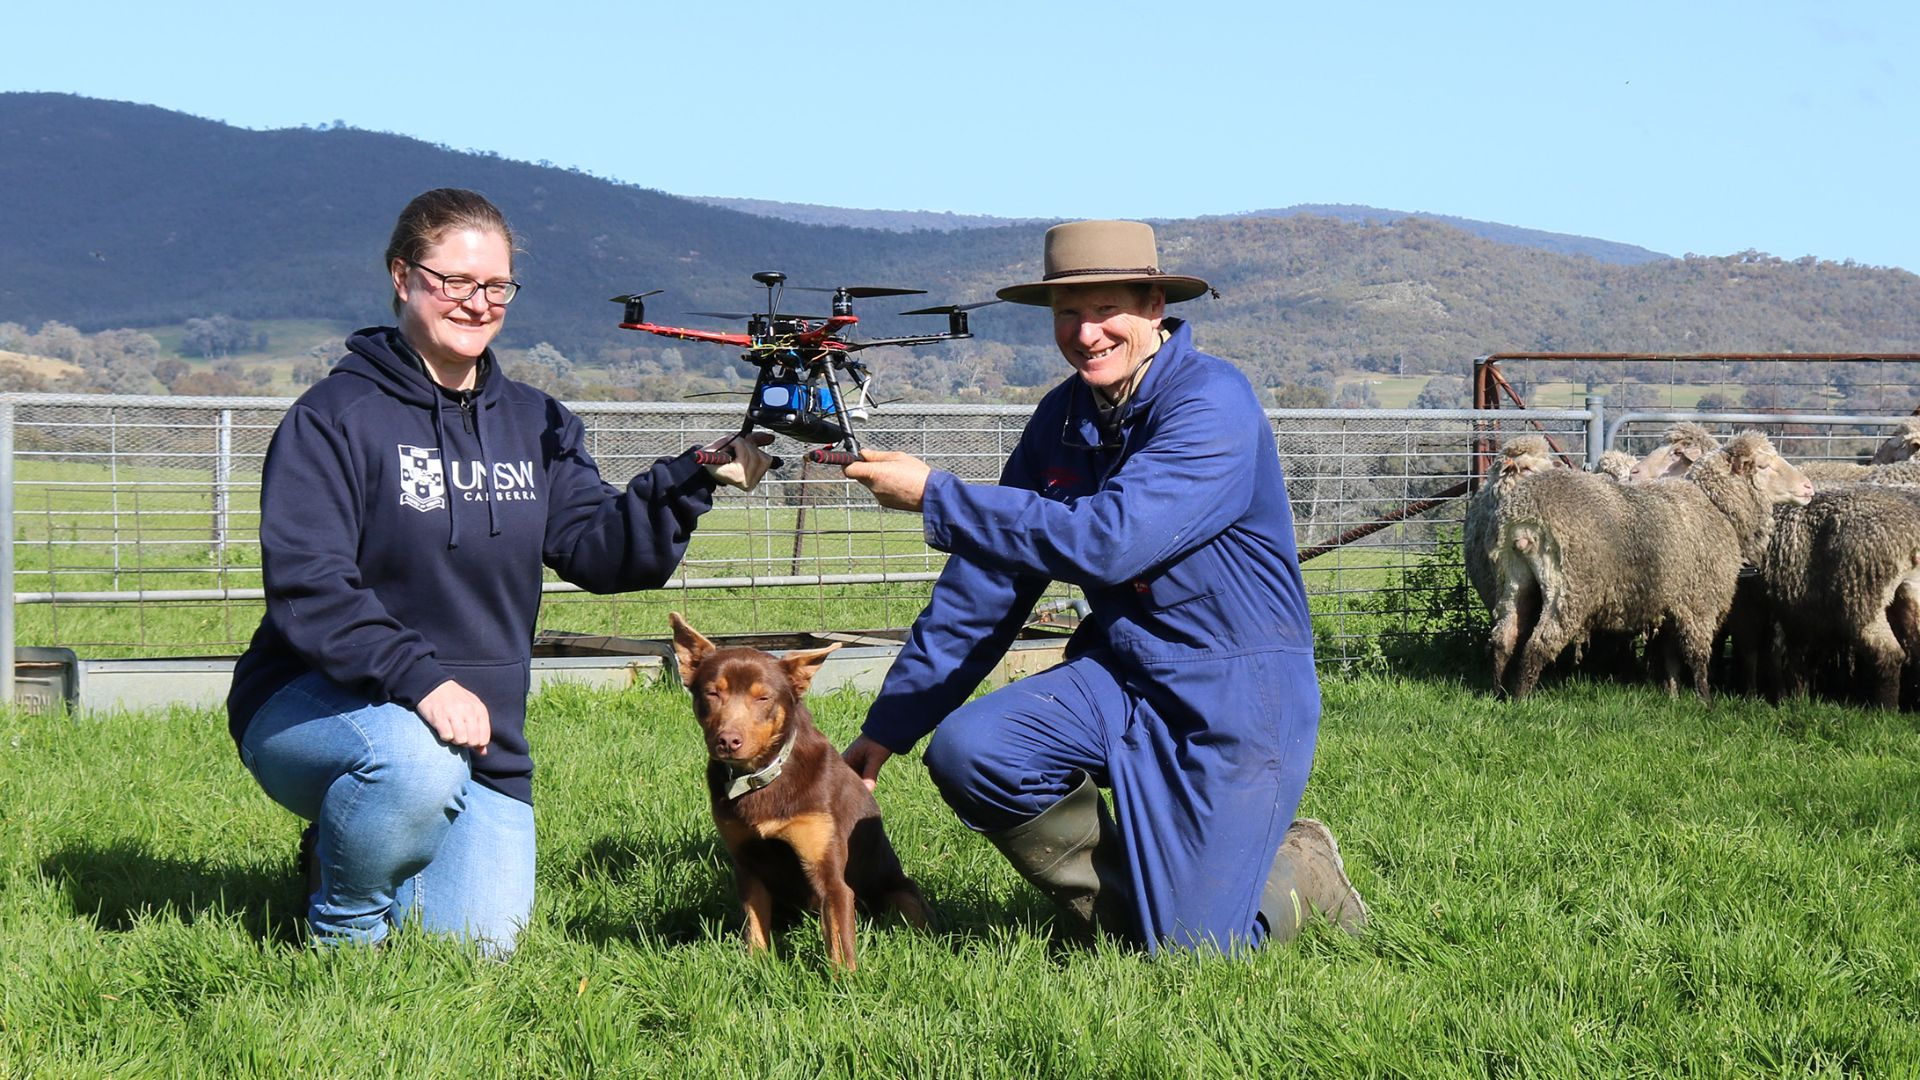 Dogs and drones: unlocking the benefits of AI mustering